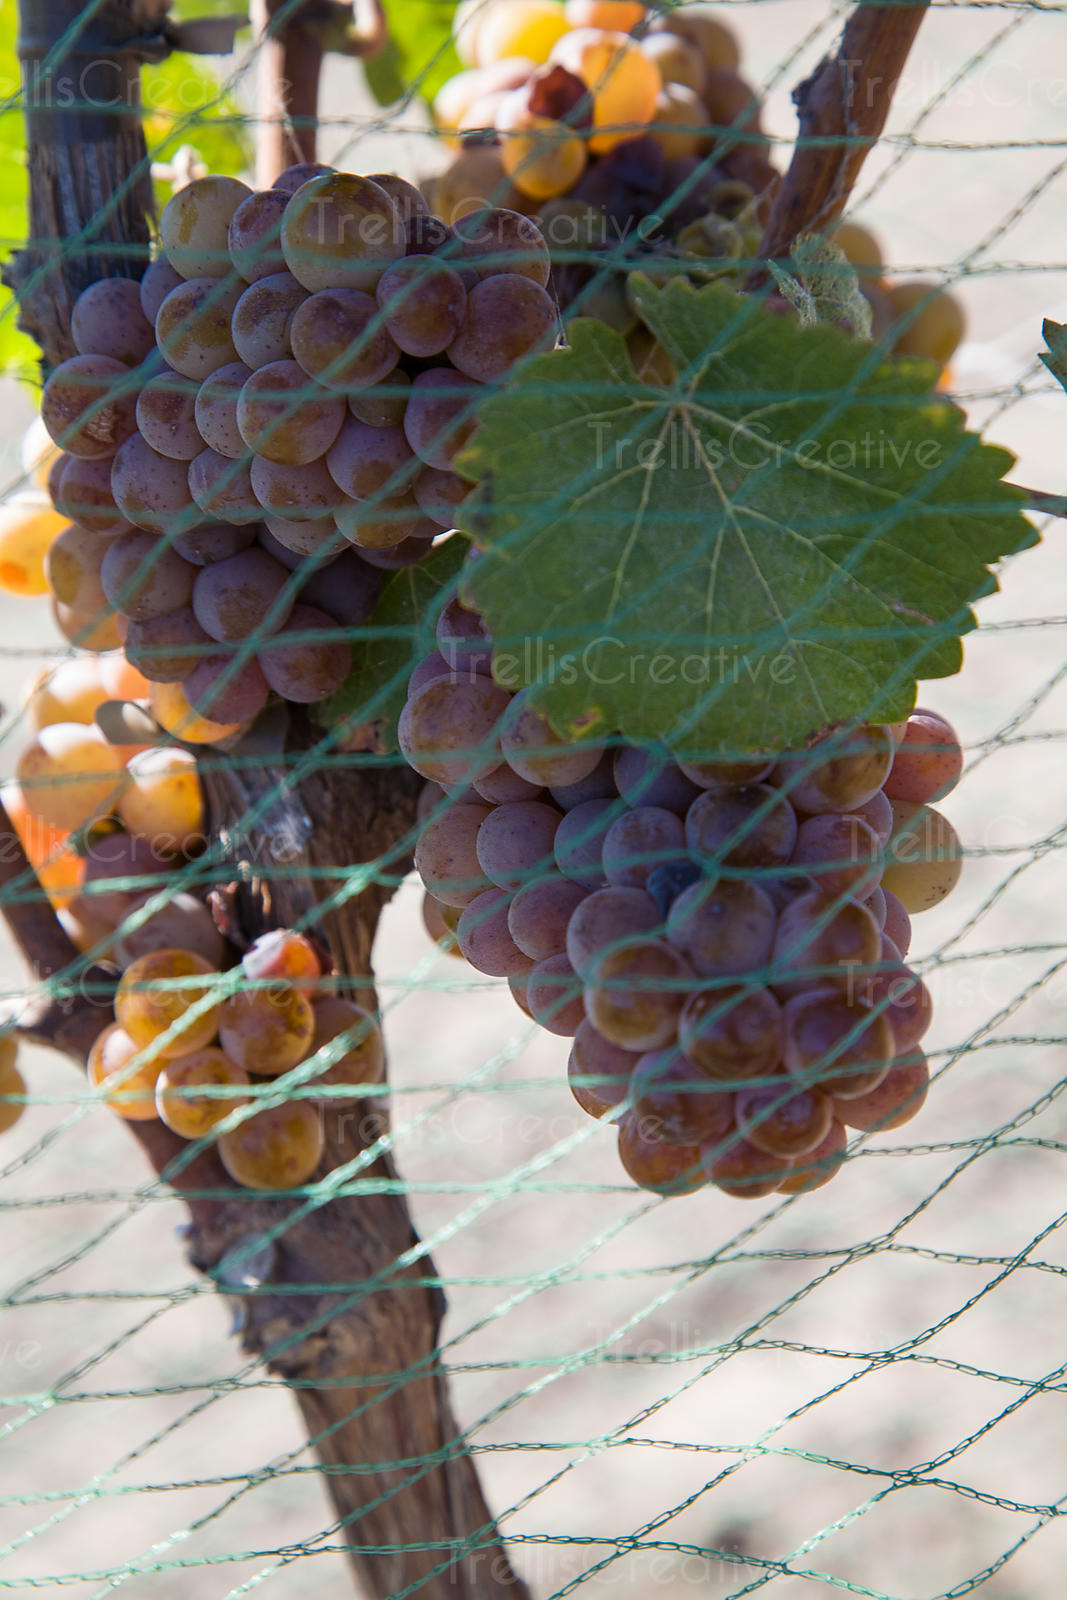 Bird netting protects ripe pinot grigio grape clusters